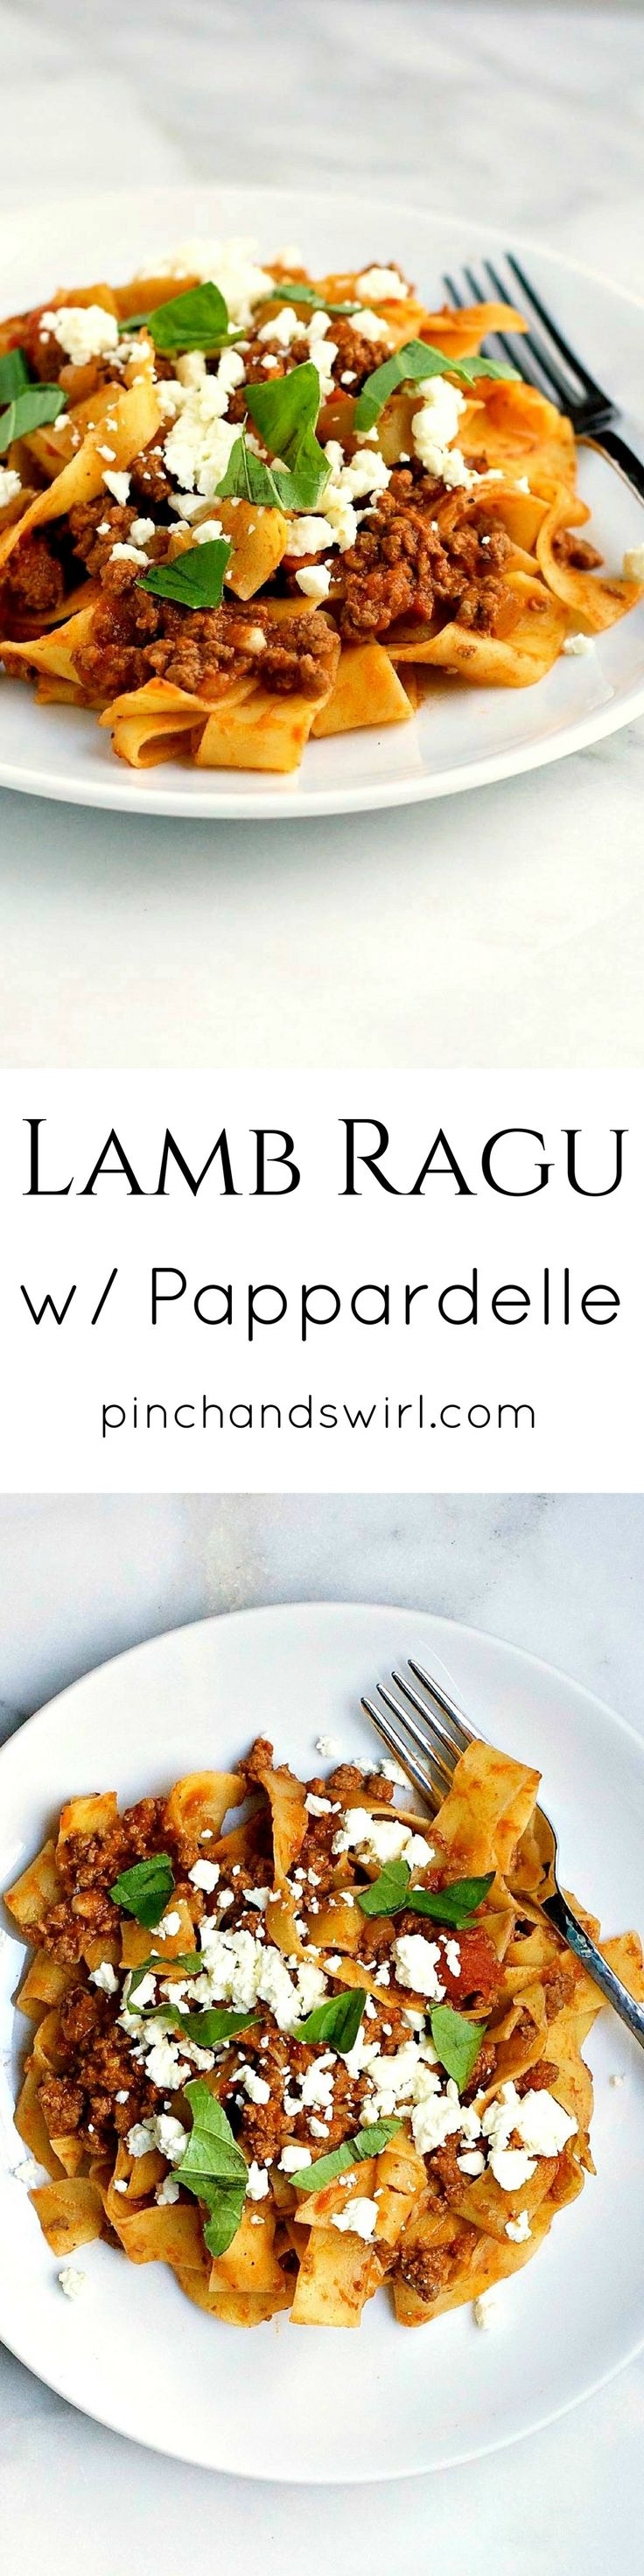 Serve this lamb ragu recipe over hot cooked pasta such as pappardelle or tagliatelle or over hot cooked rice. If desired, top with crumbled feta and fine slivers of fresh basil or mint. @pinchandswirl